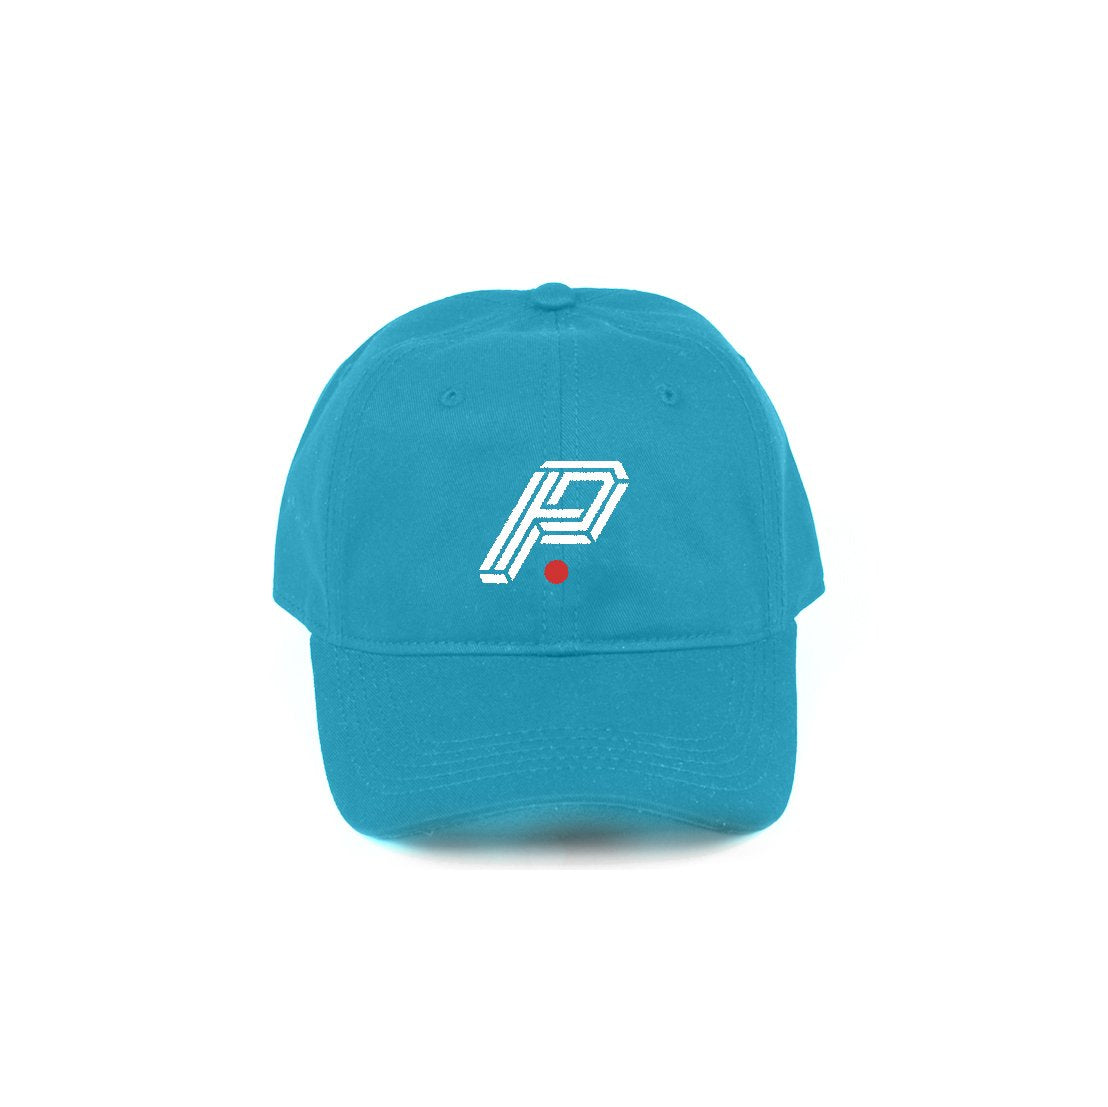 SPORTS Polo Cap (Cardinal Blue)